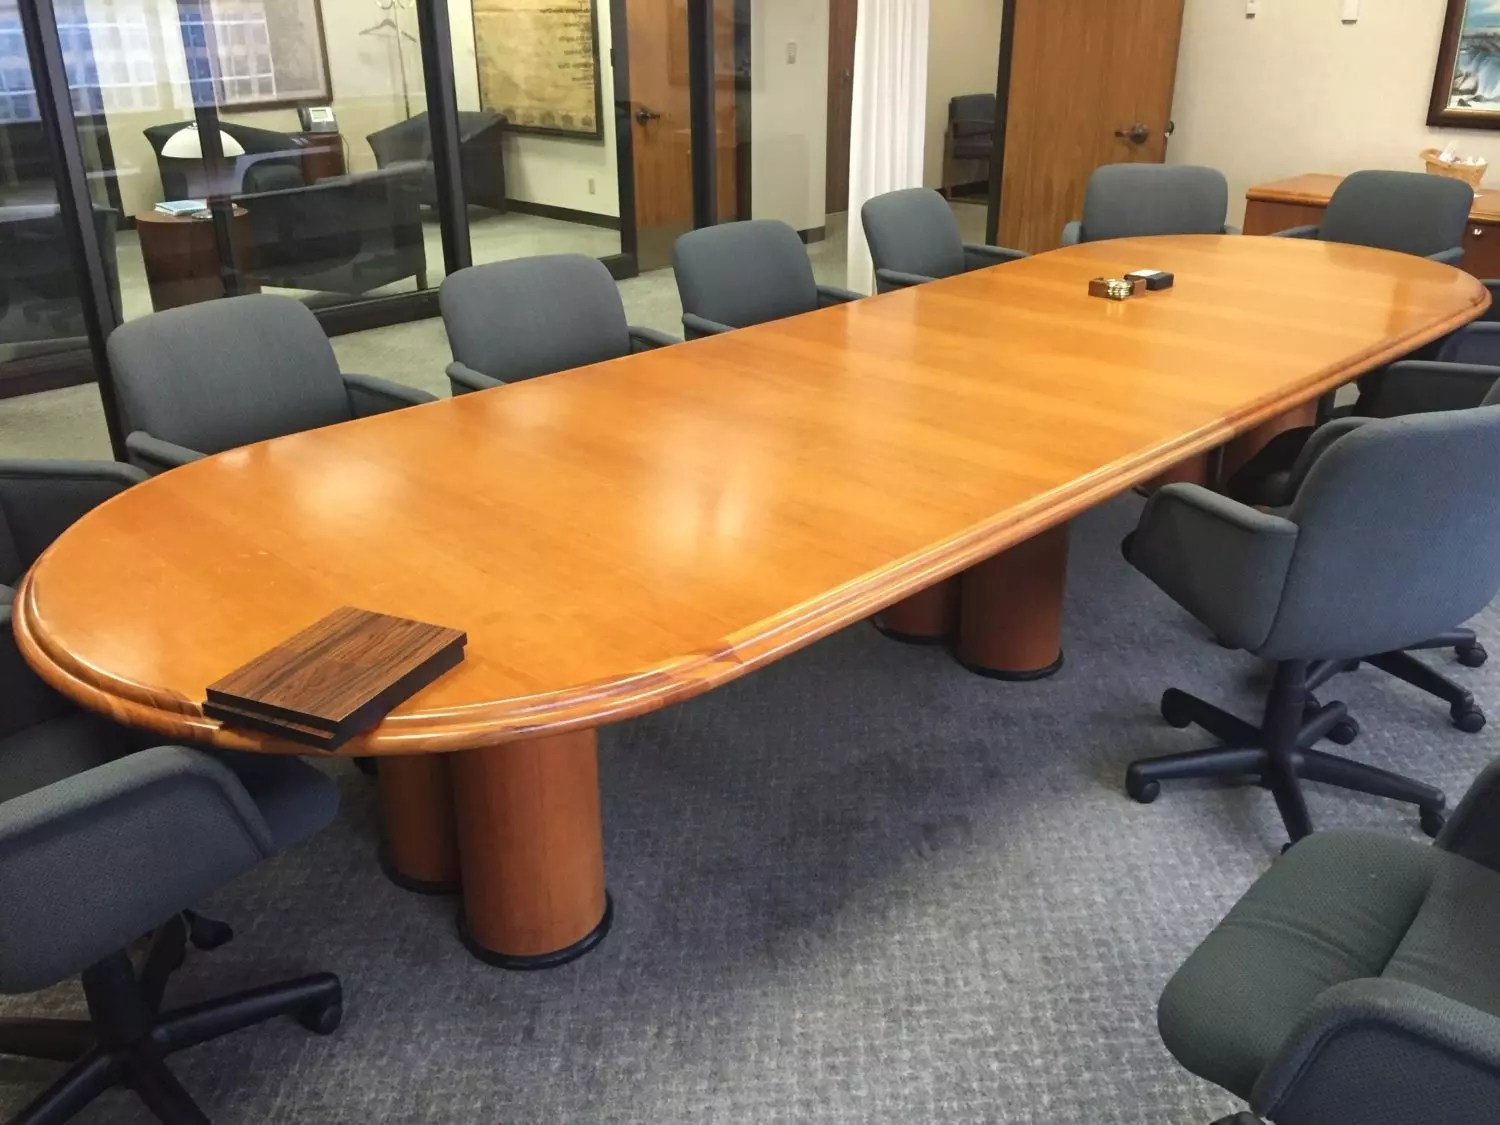 How To Change The Color Of Your Conference Room Table